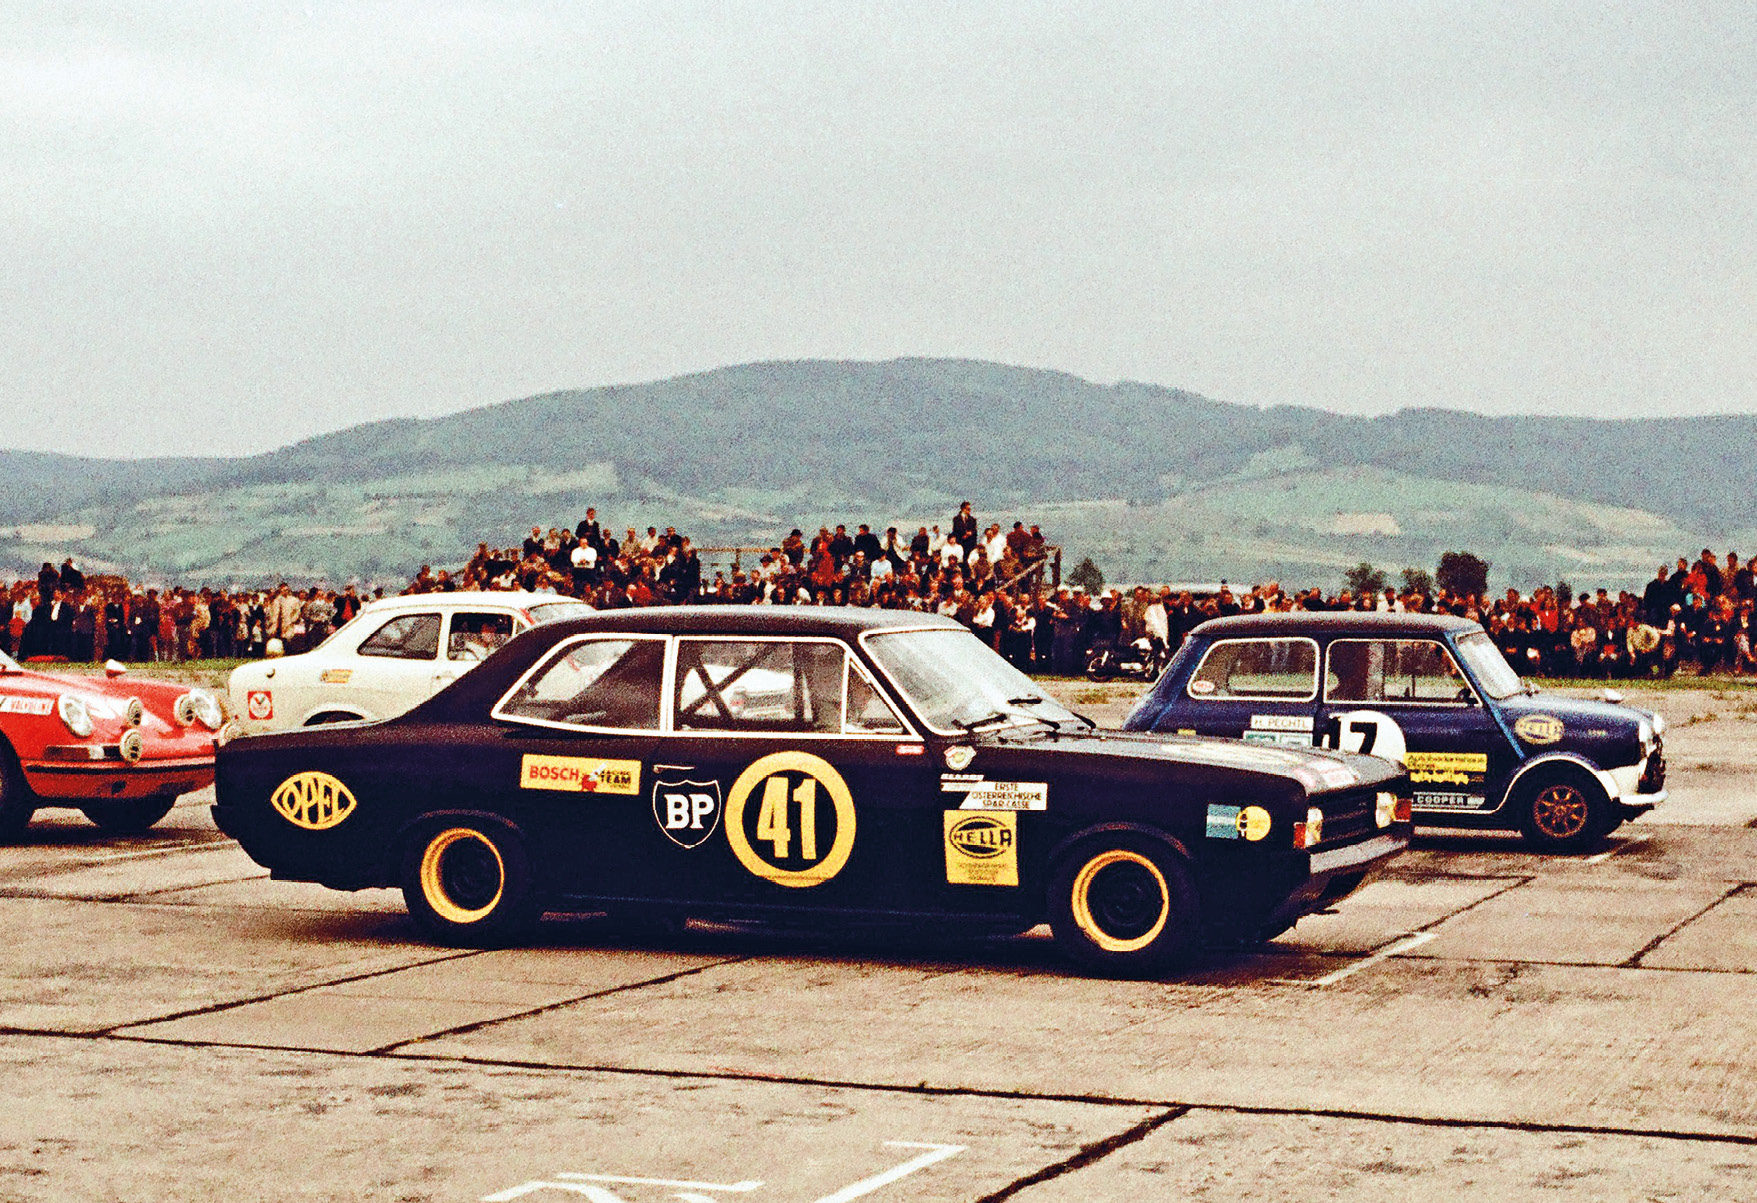 The 'Black Widow' was a modified Opel Rekord Series C, which Lauda rated as the worst car he ever drove